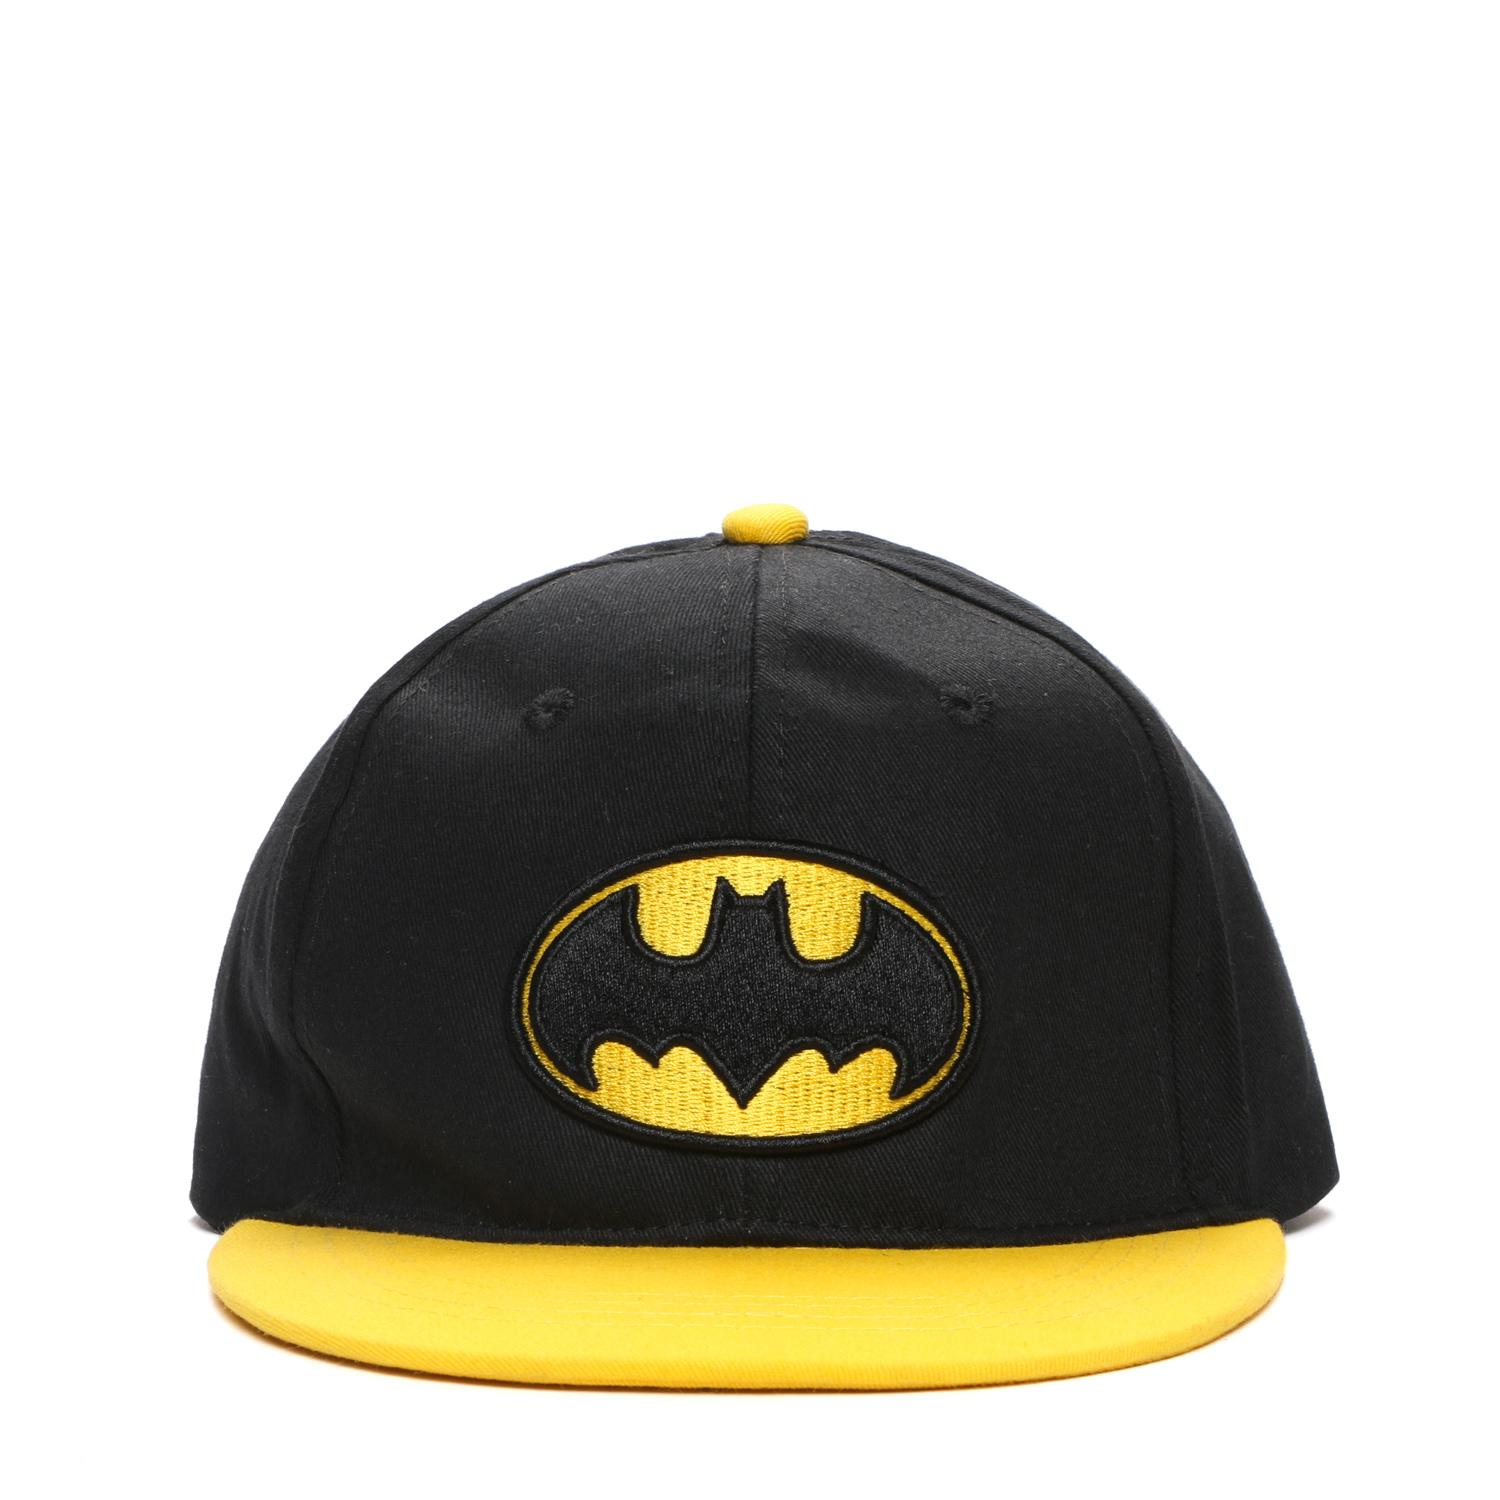 6278afe8c8e DC Comics Batman Boys Snapback Baseball Cap (Black)